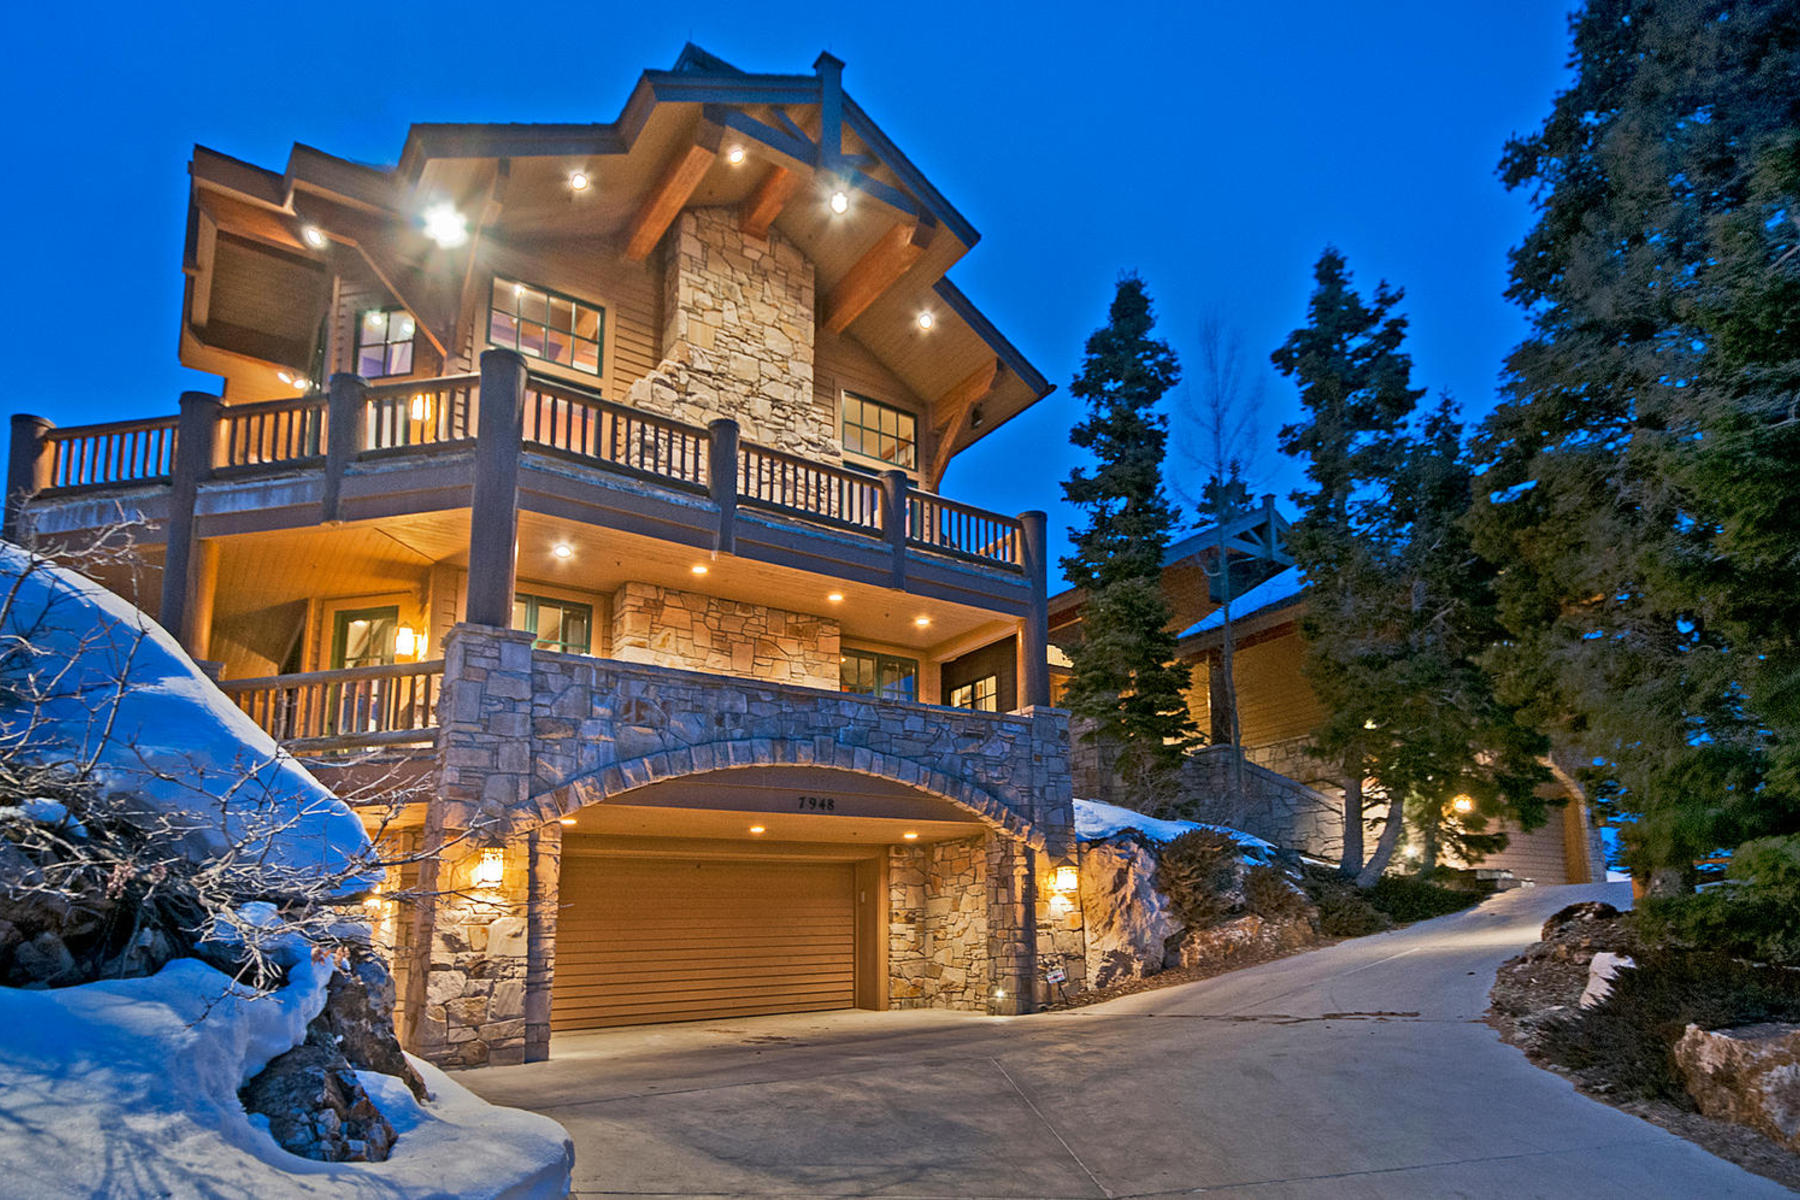 Maison unifamiliale pour l Vente à Timeless Deer Valley Ski-In Ski-out Mountain Retreat 7948 Red Tail Ct Park City, Utah, 84060 États-Unis